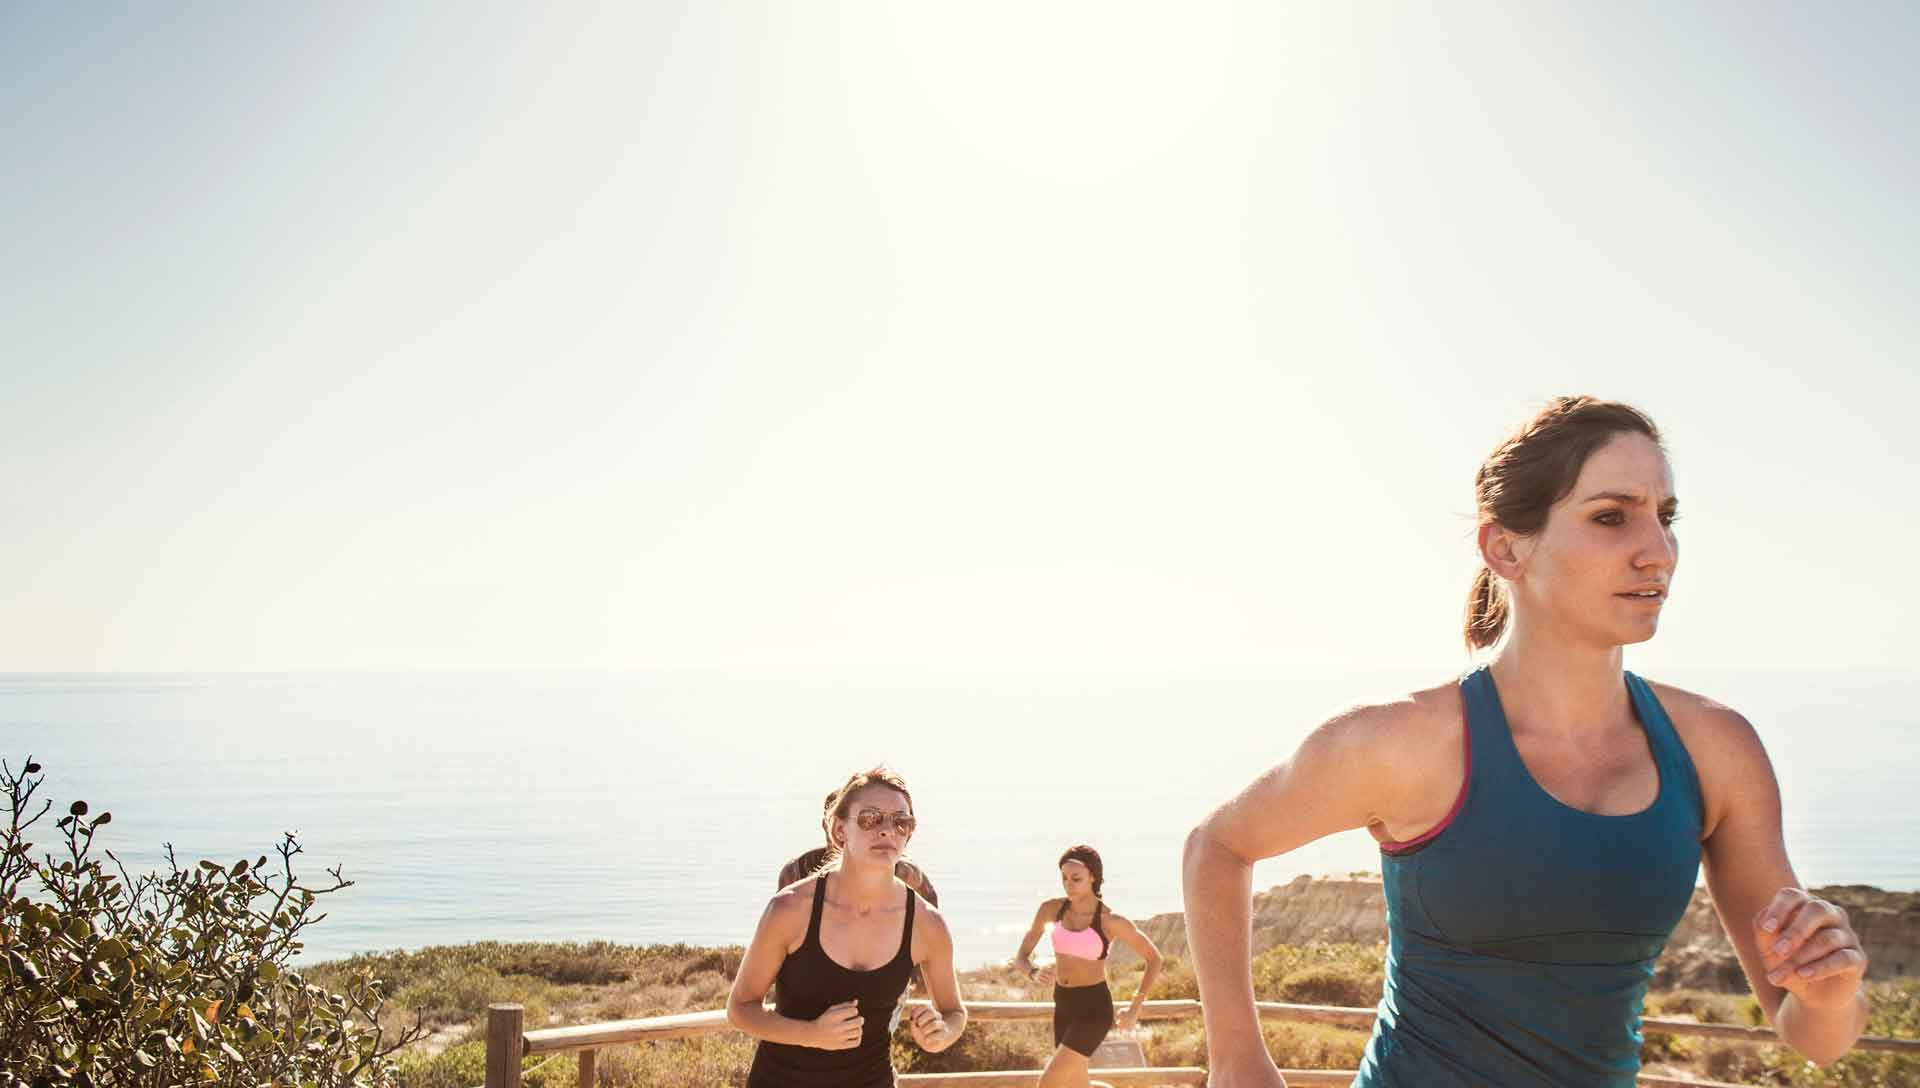 Photo of three women running on a hiking trail overlooking the ocean